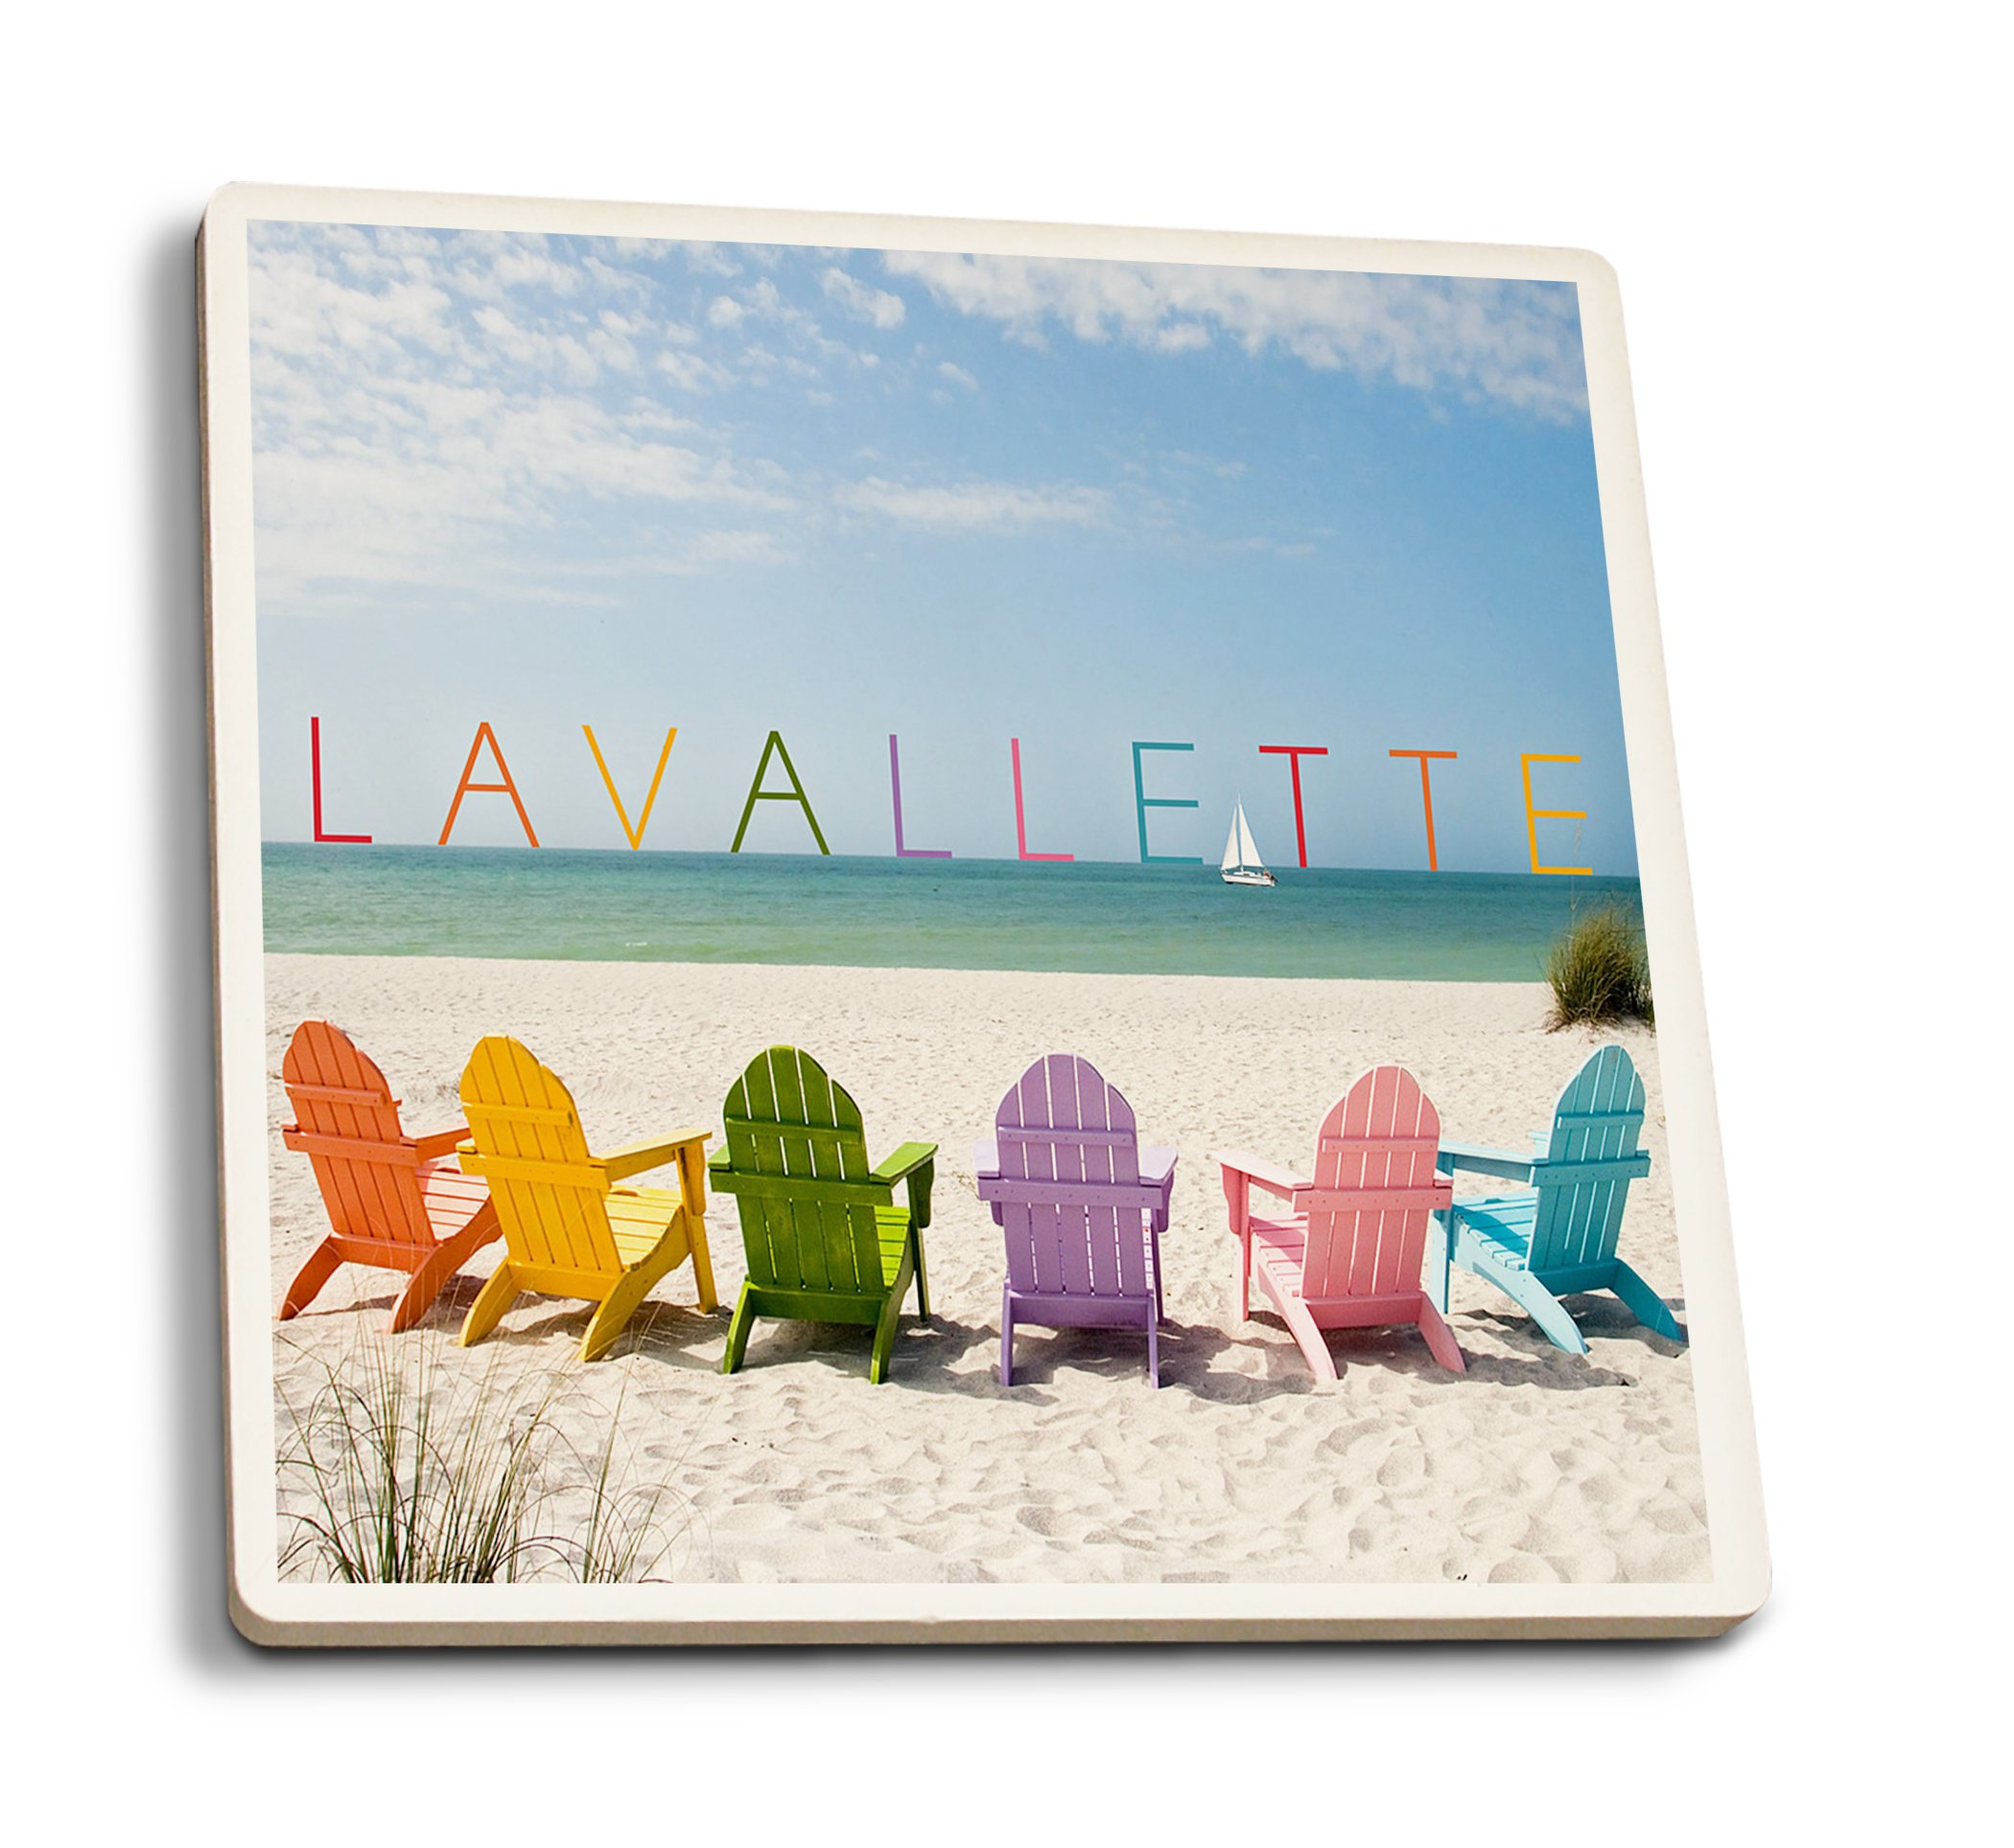 Lavallette, New Jersey - Colorful Chairs (Set of 4 Ceramic Coasters - Cork-Backed, Absorbent)